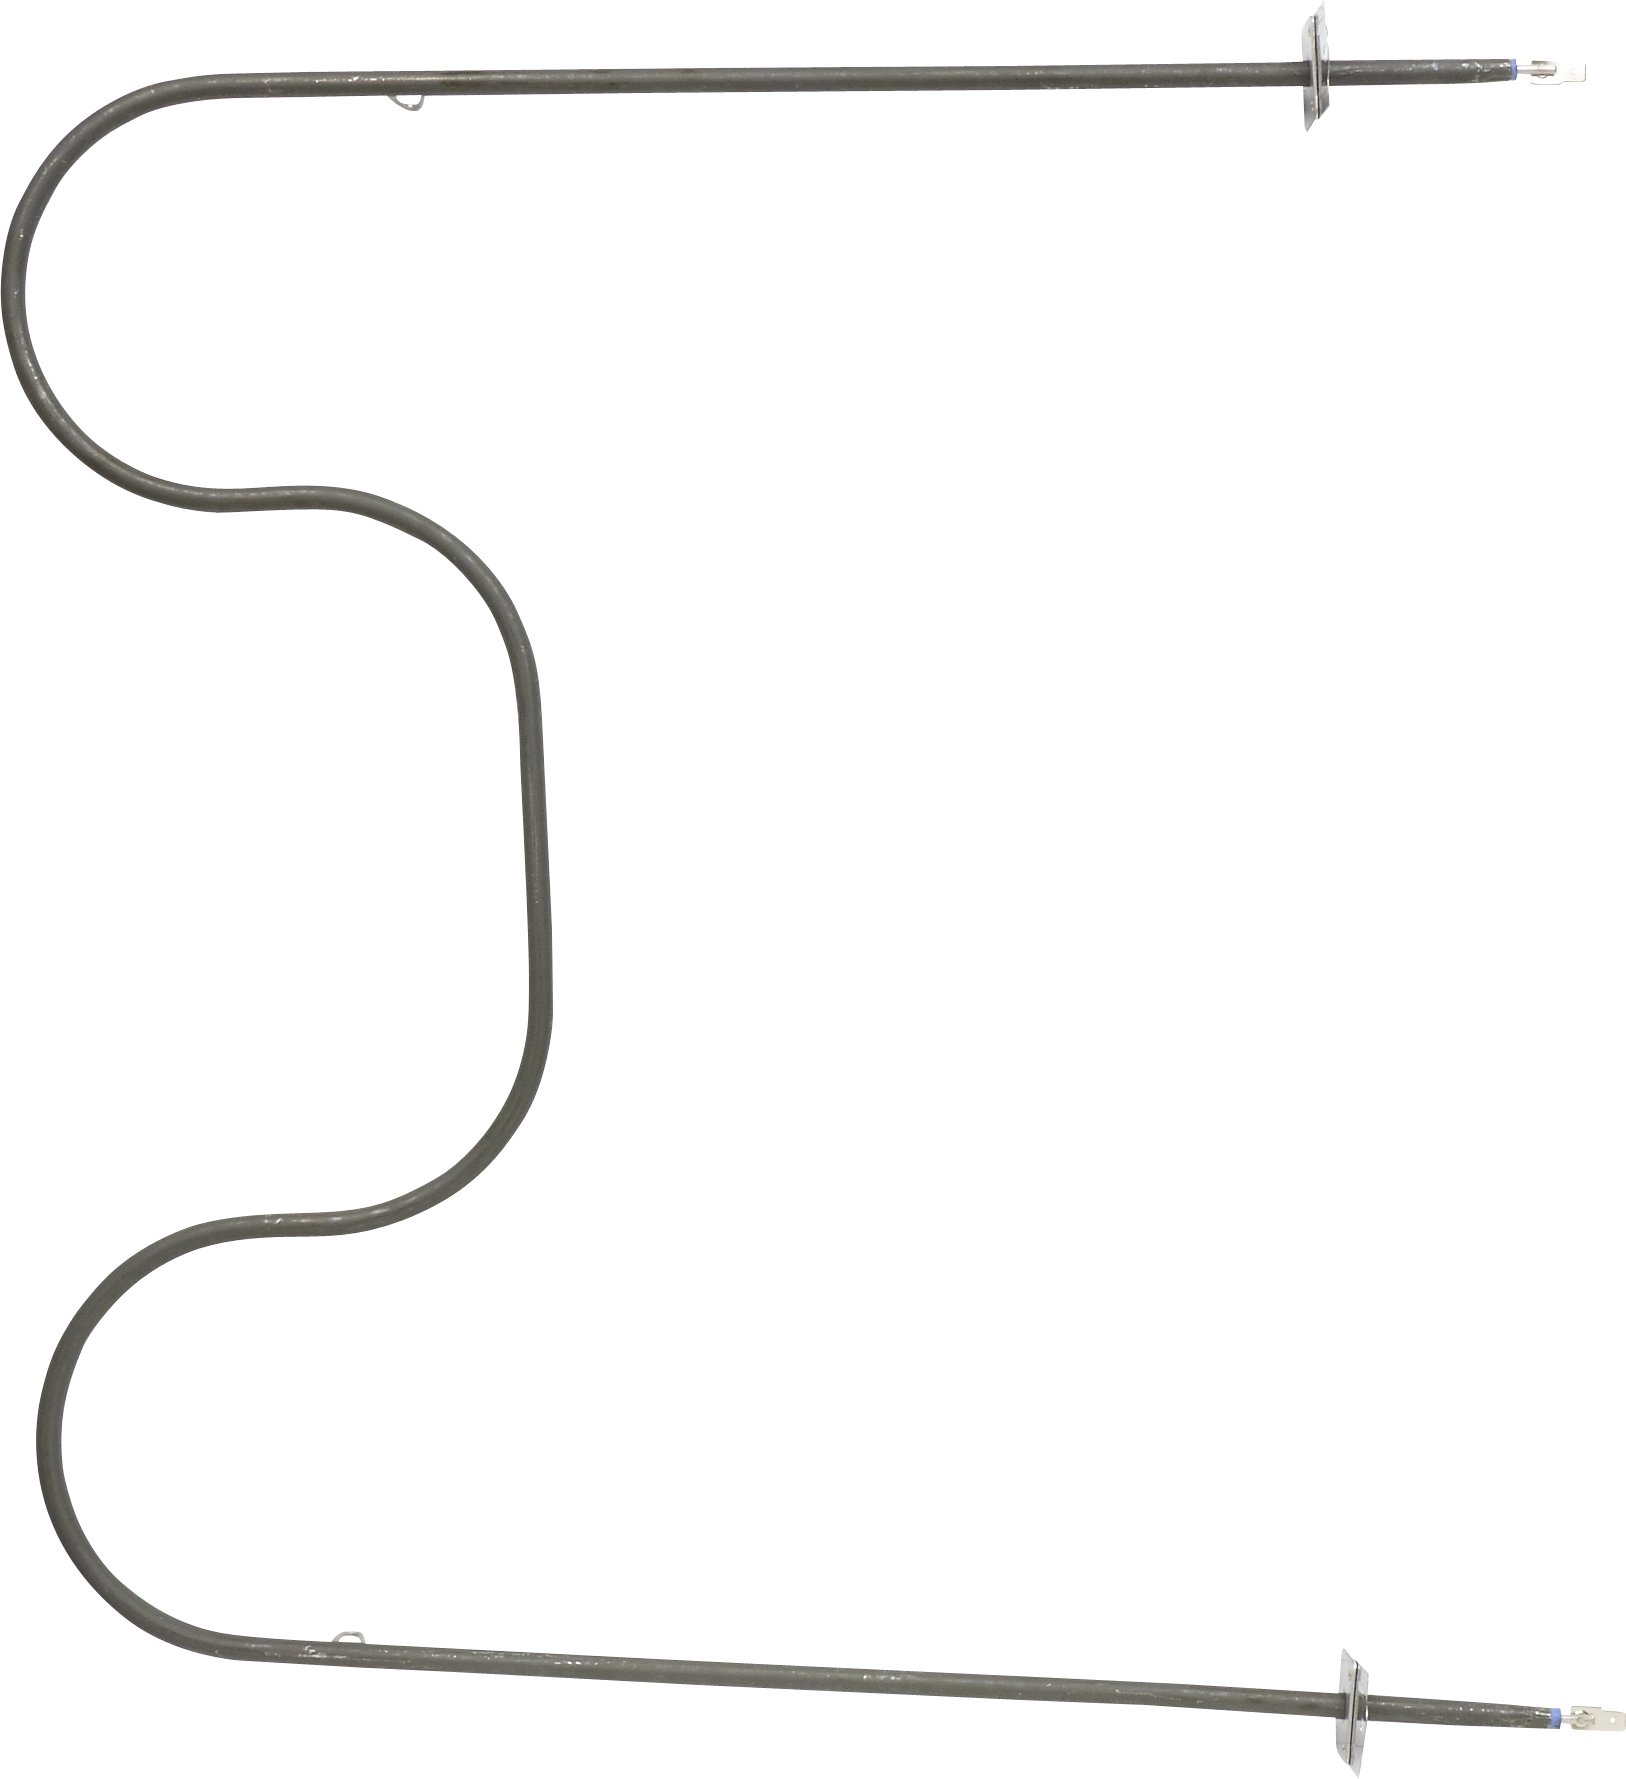 Whirlpool 74003019 Bake Element